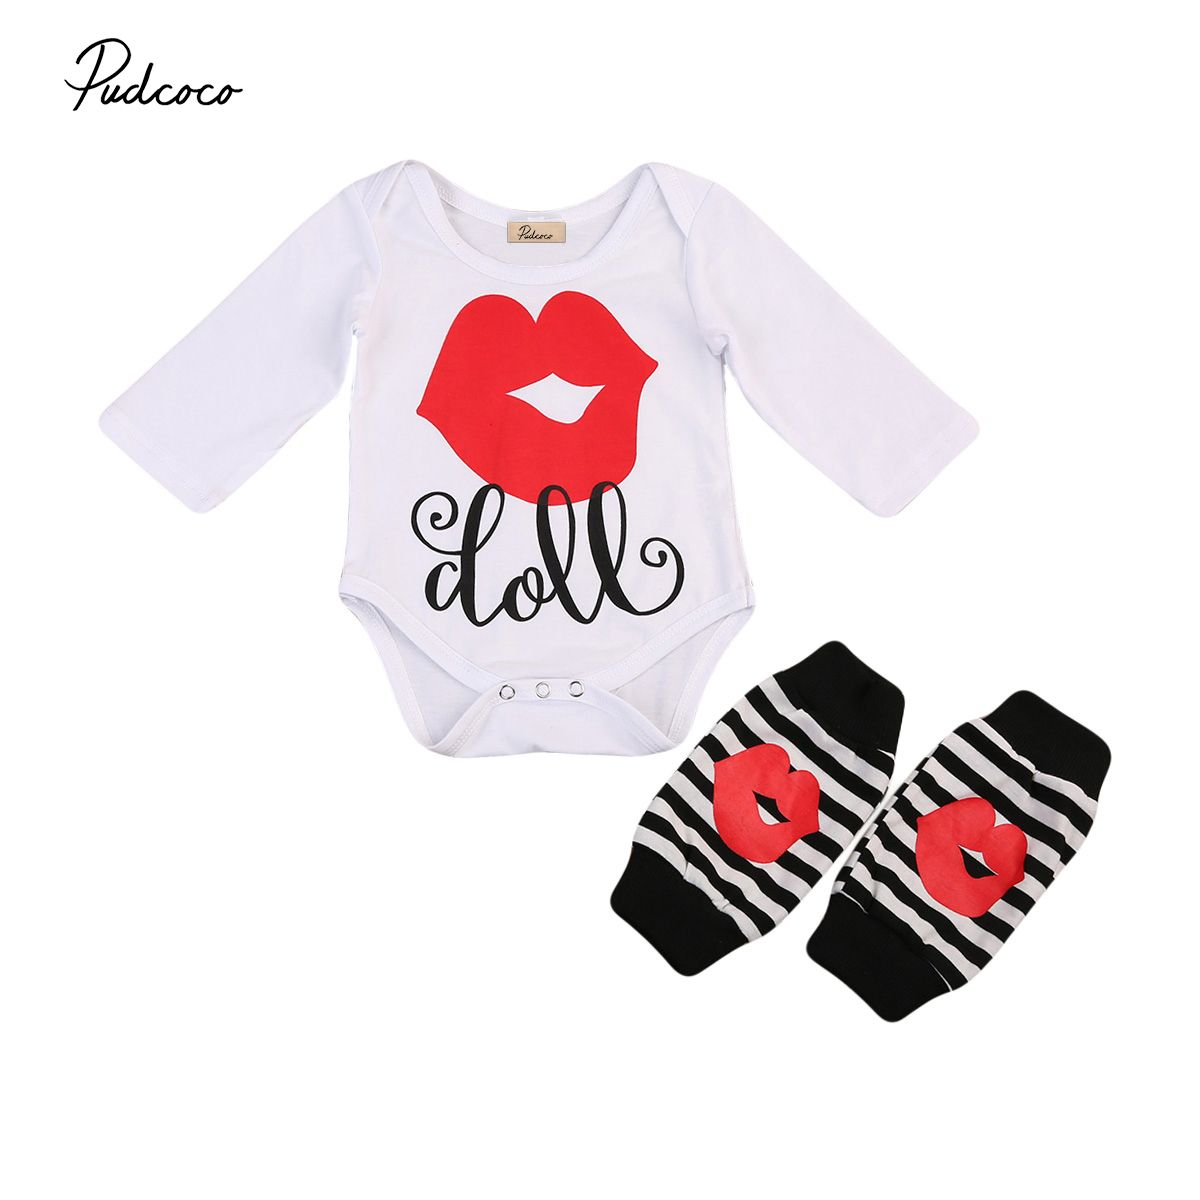 99e885f2ccd3a pudcoco Newest Arrivals Hot Infant Newborn Toddler Christmas ...